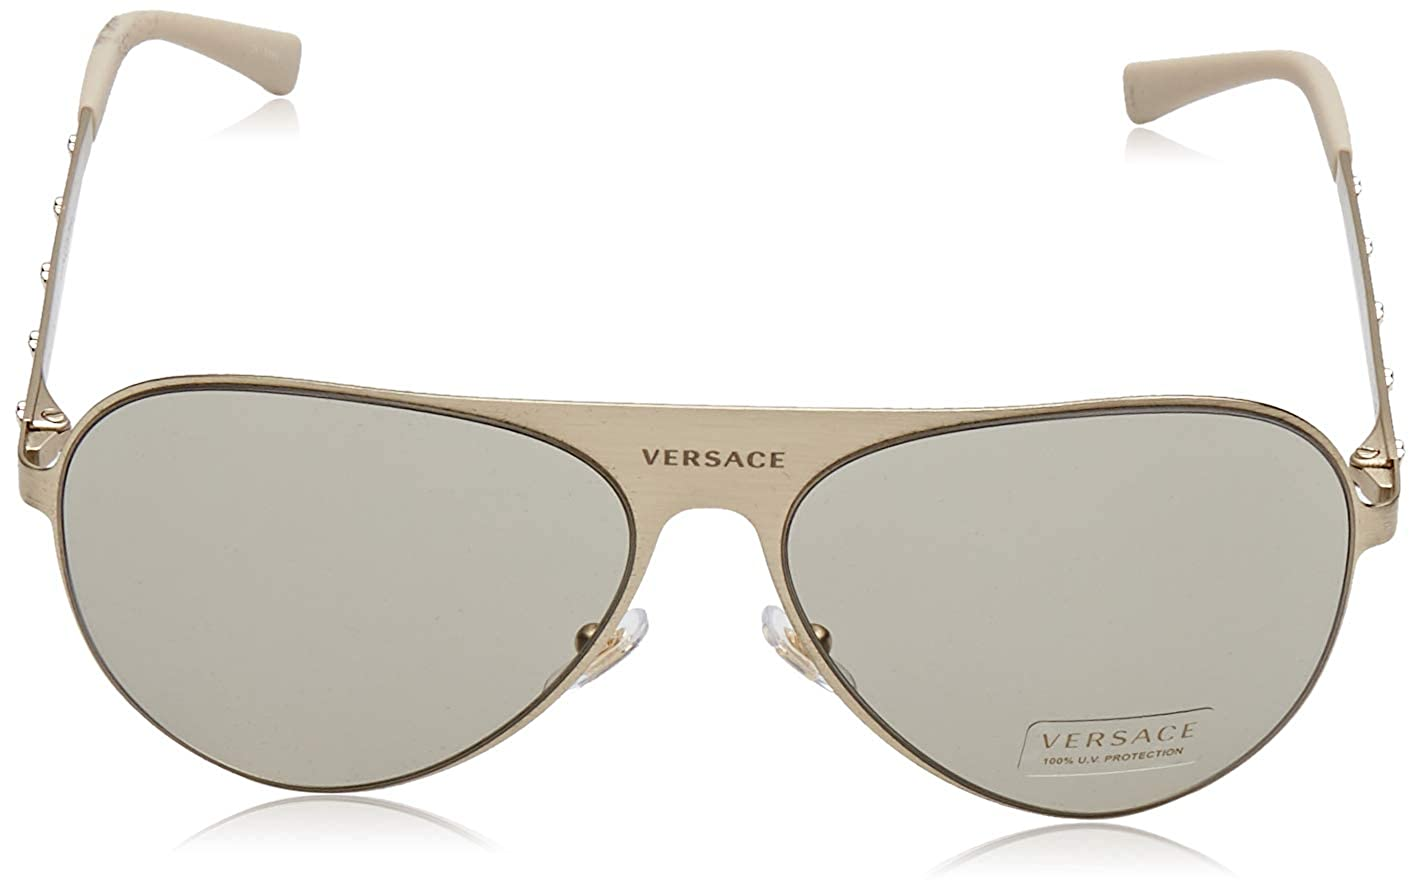 Amazon.com: Versace Unisex ve2189 anteojos de sol, 59mm ...